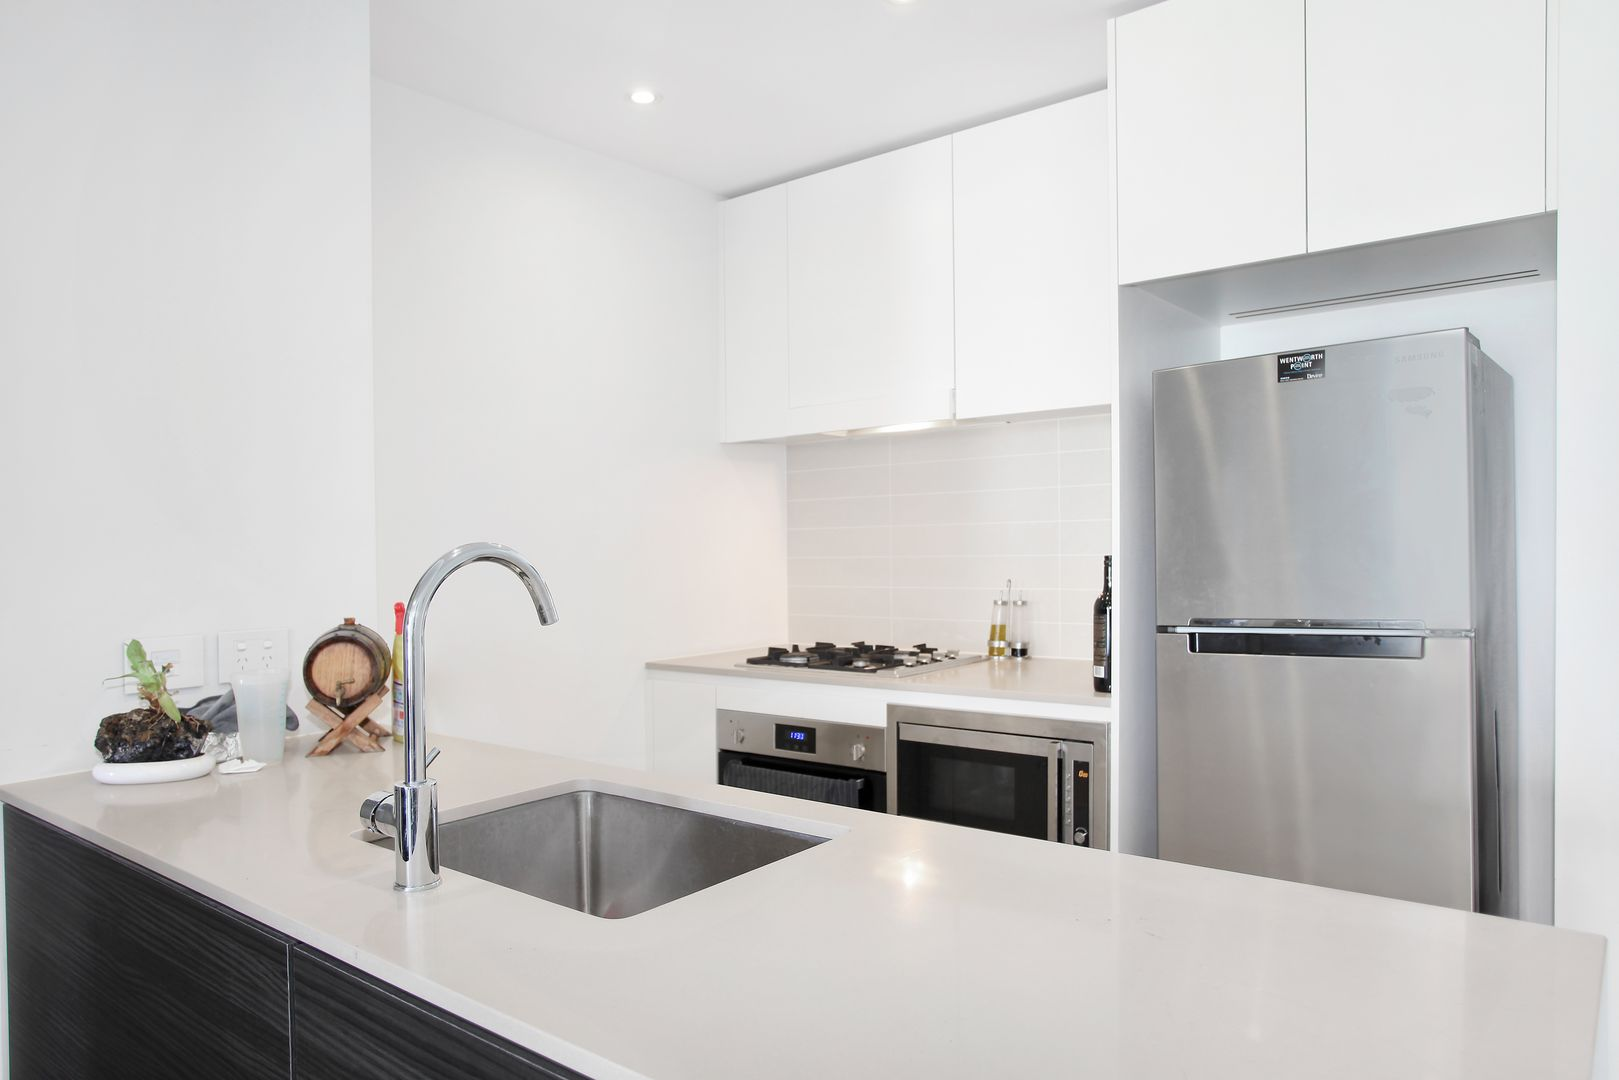 726/26 Baywater Drive, Wentworth Point NSW 2127, Image 1